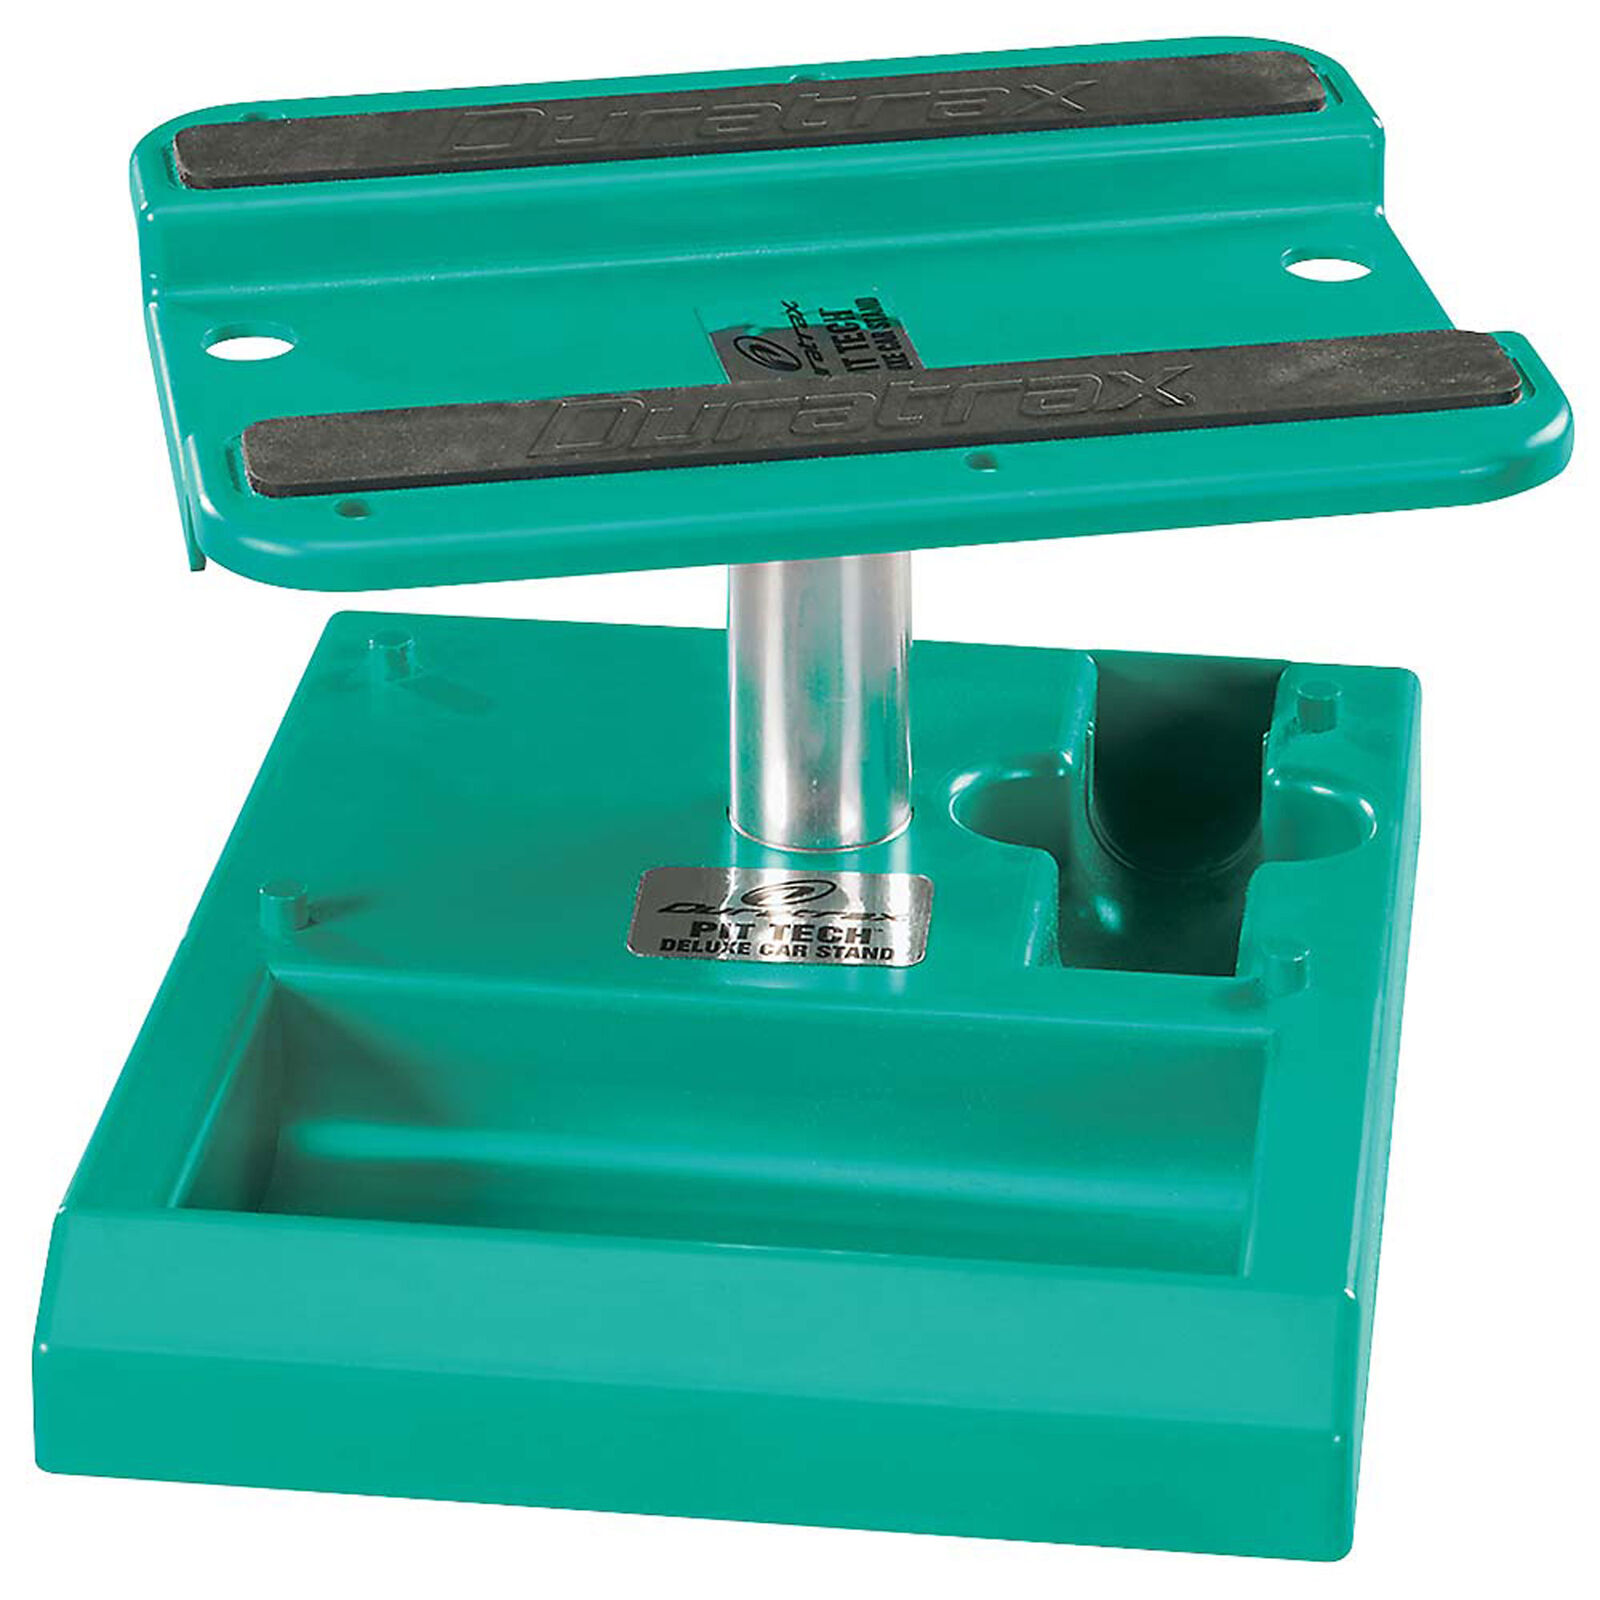 Pit Tech Deluxe Car Stand, Green